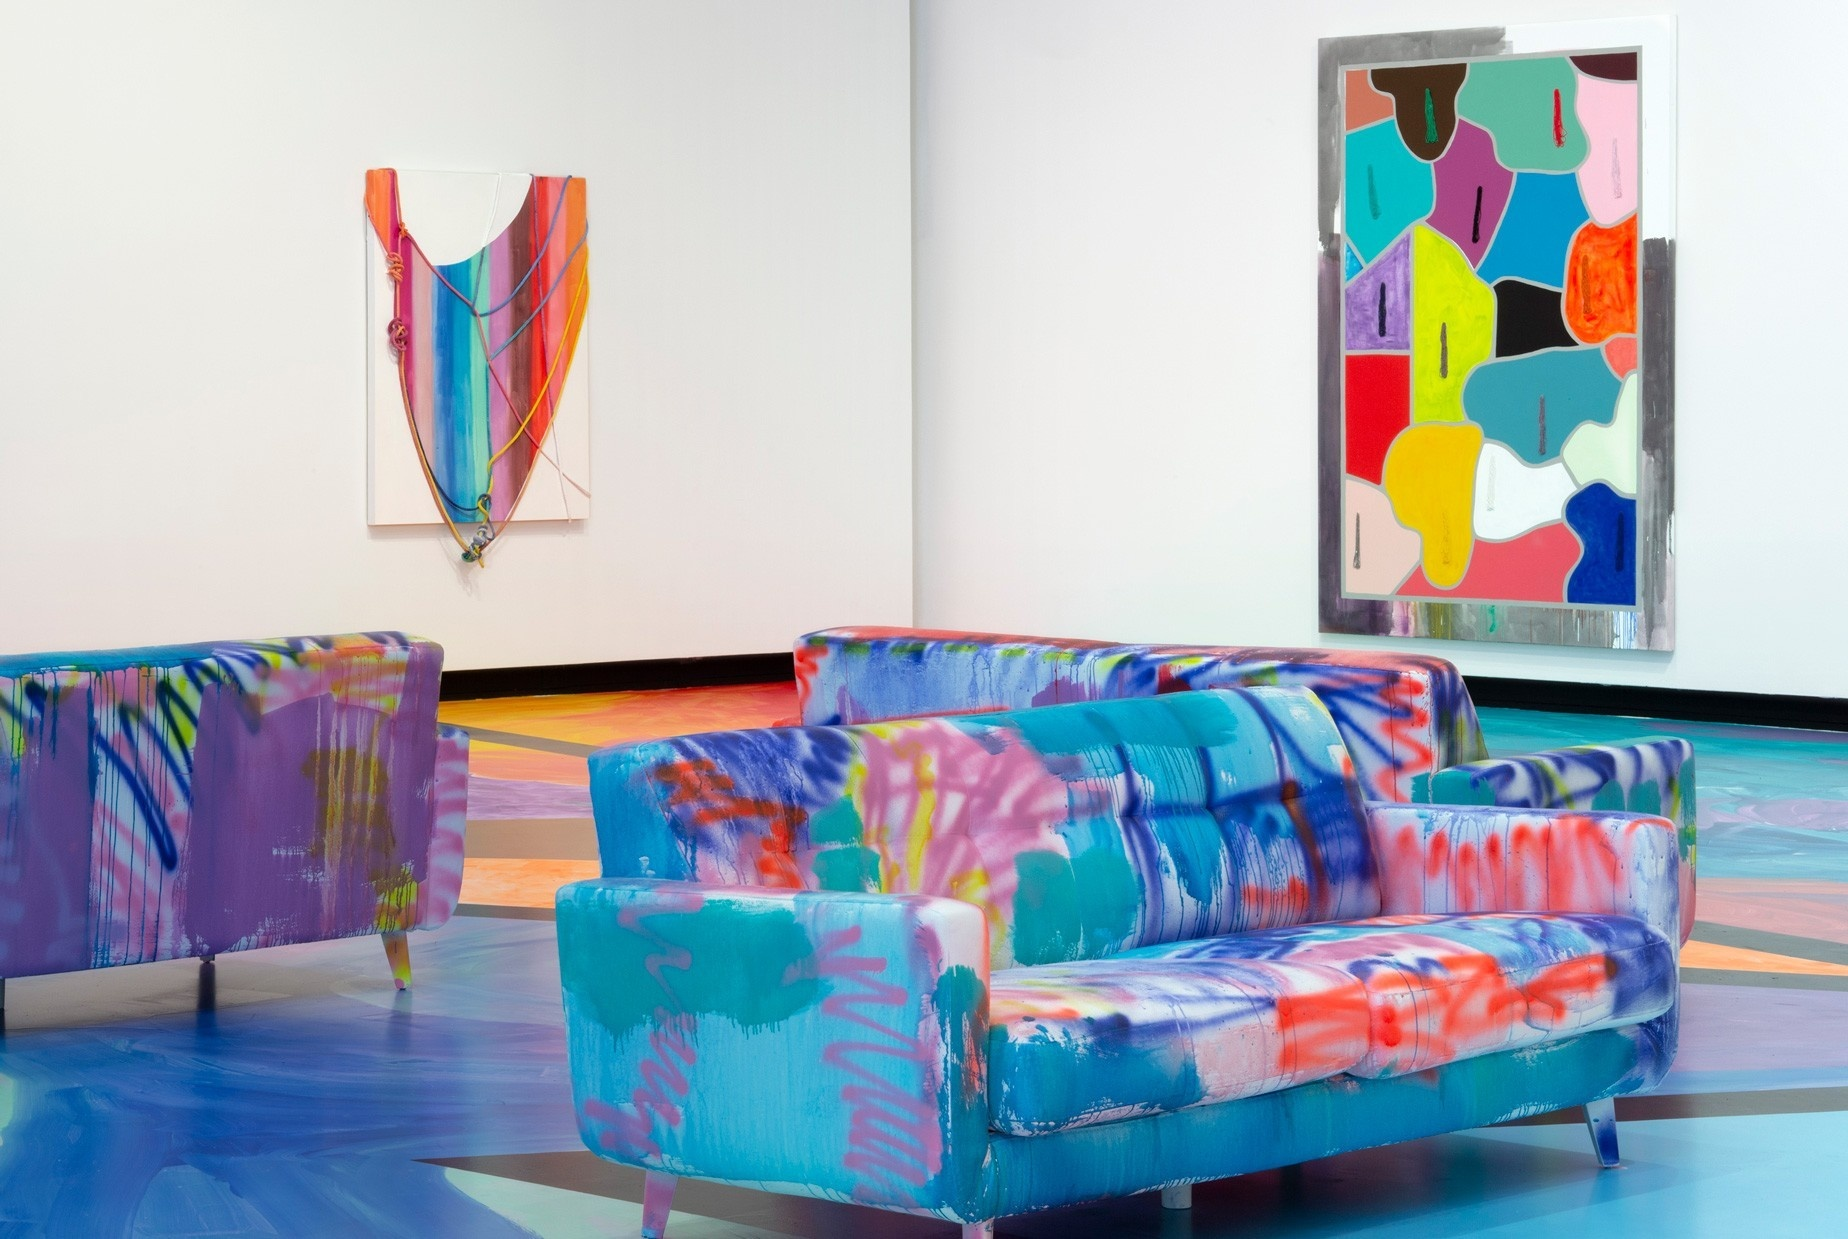 Three colorful painted couches, a colorful painted floor, and two colorful paintings on a gallery wall